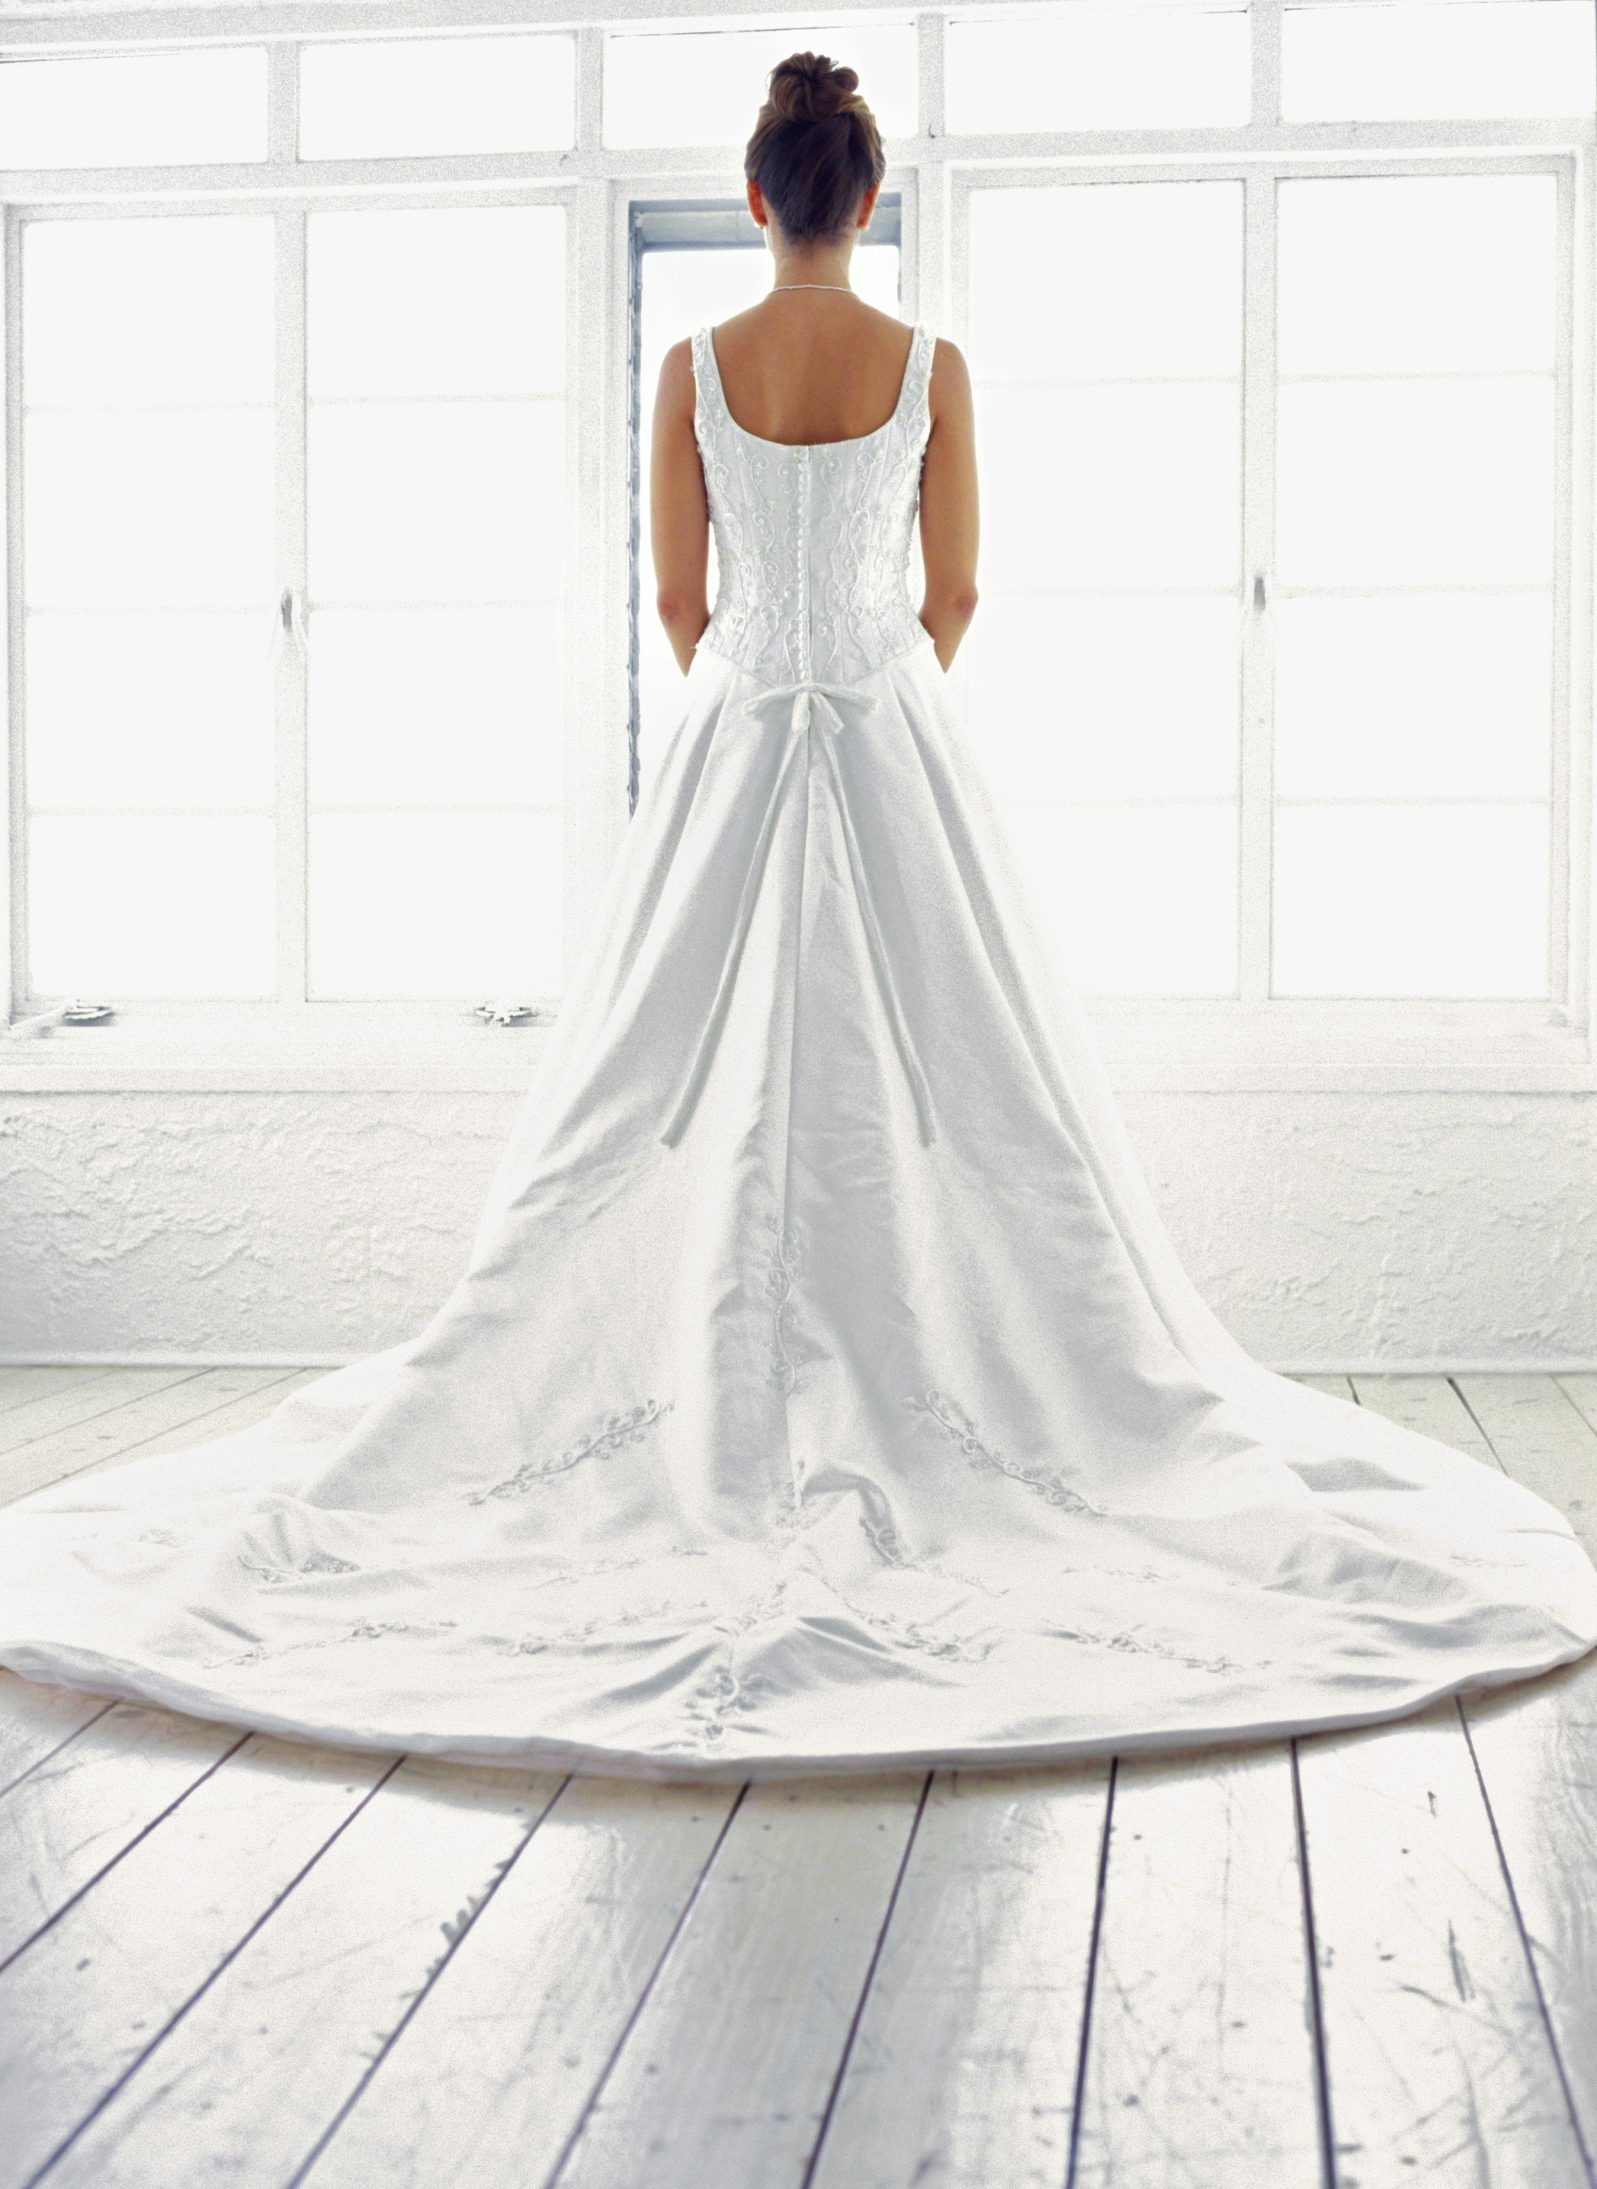 How To Make A Bustle Without Sewing A Bustle Is A Beautiful Way To Gather The Extra Fabric At Wedding Dress Train Wedding Dress Bustle Making A Wedding Dress